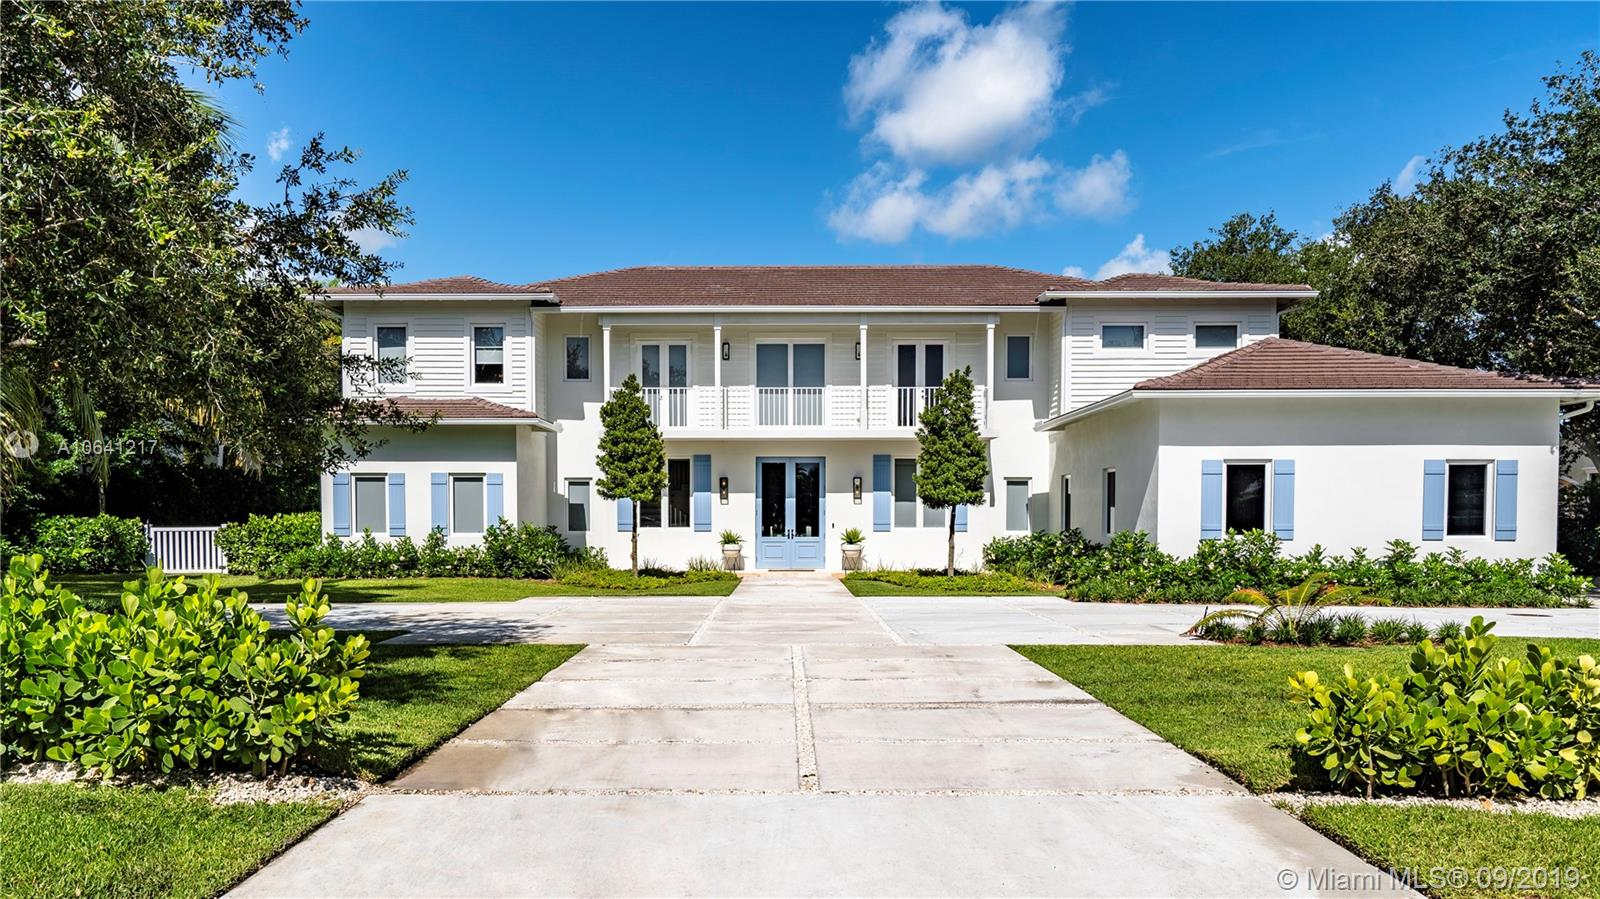 12250 SW 60th Ct  For Sale A10641217, FL